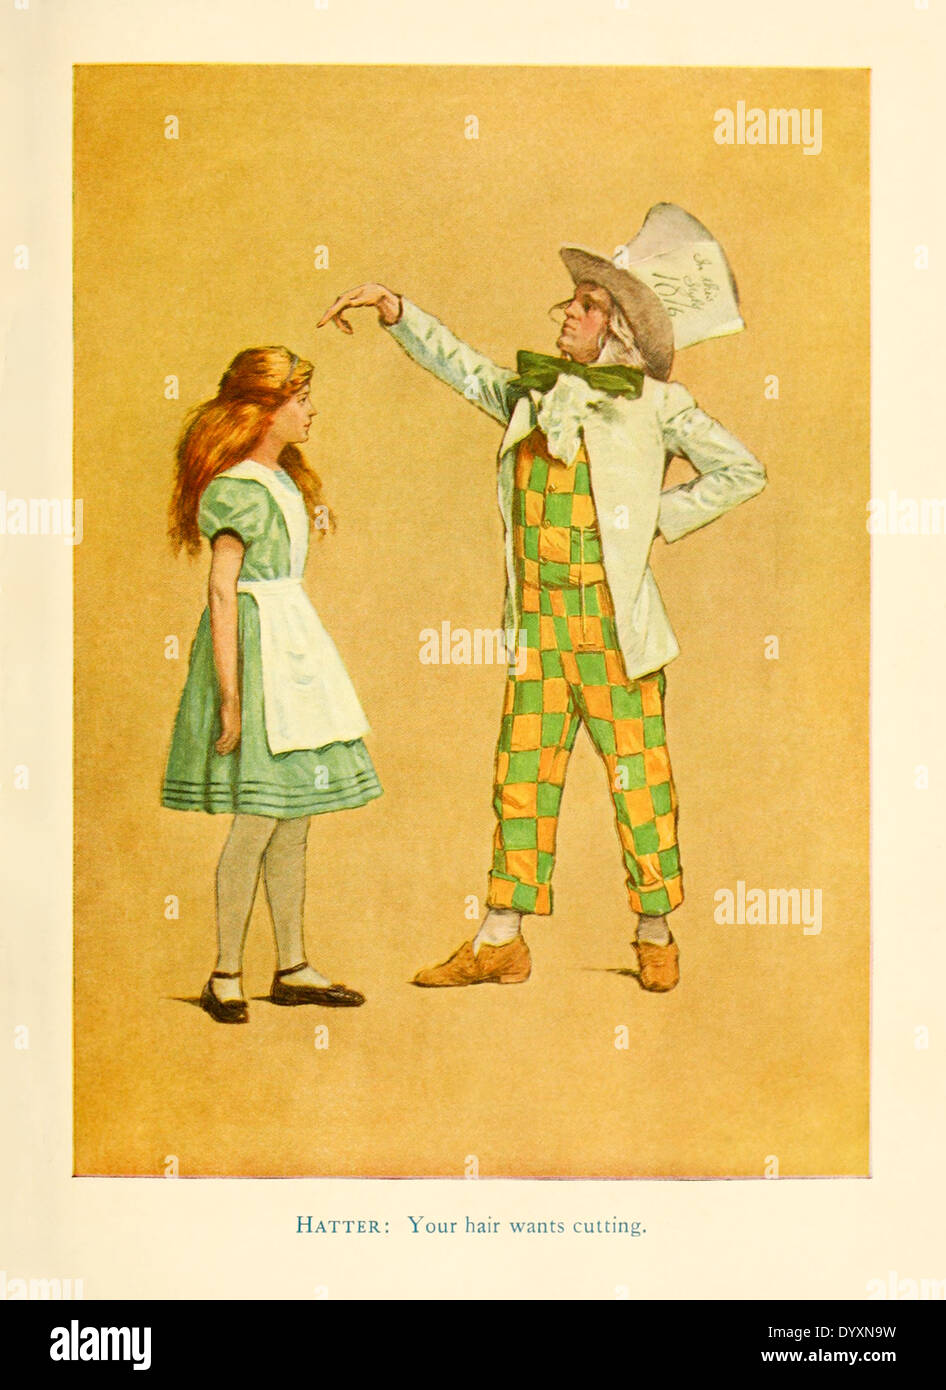 Alice and the Hatter, from for the 1915 stage adaptation of 'Alice in Wonderland' by Lewis Carroll, illustration by James Allen St. John (1872-1957). See description for more information. - Stock Image